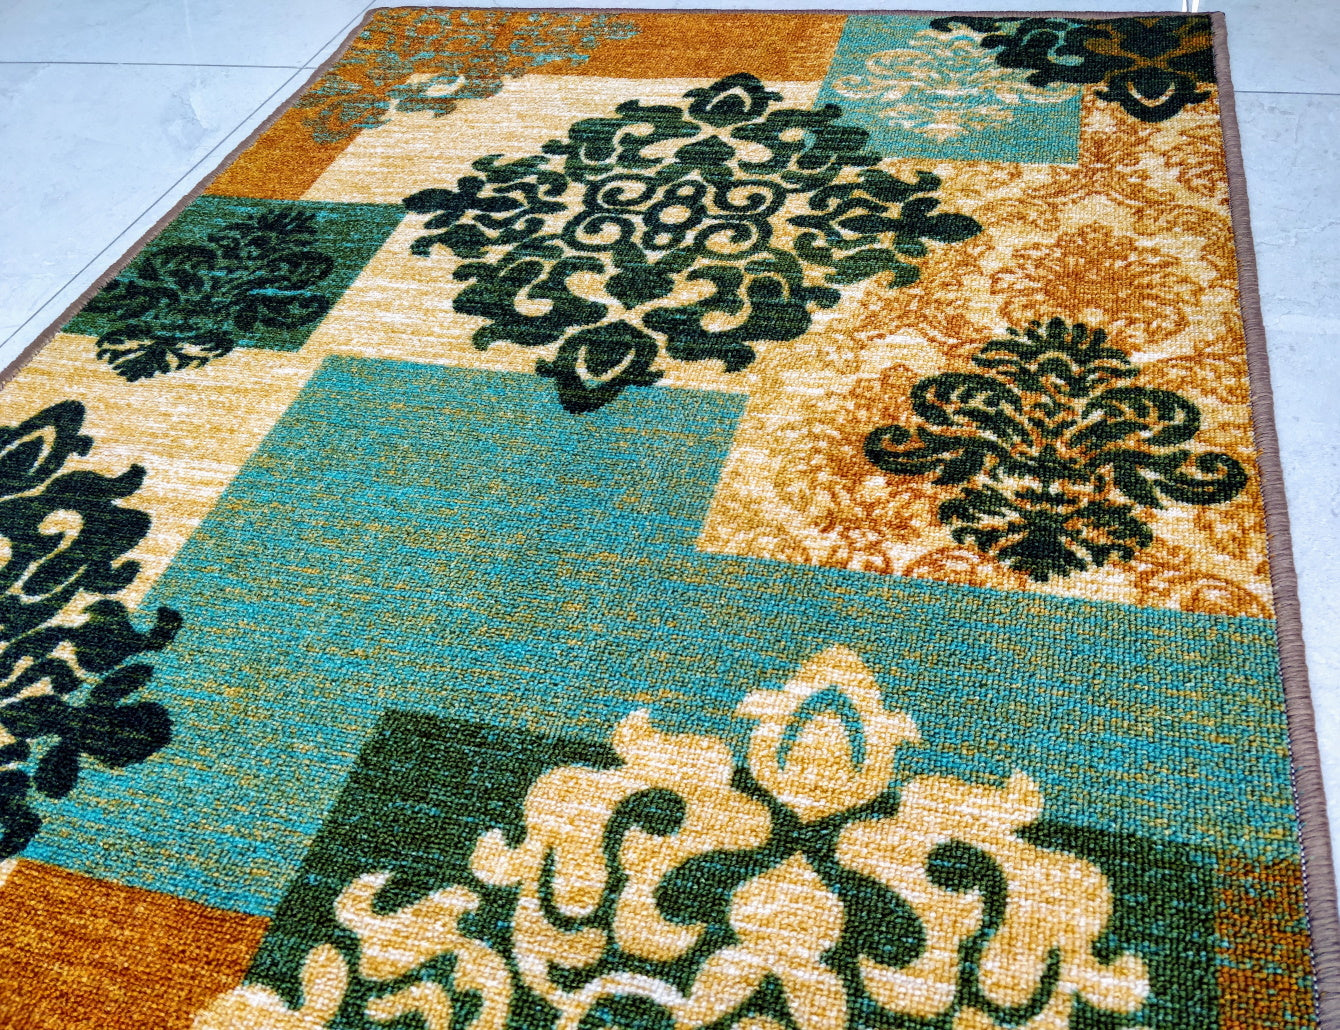 Green Decor Design with Copper Touch Area Rug / Runner - Anti-slip with latex backing